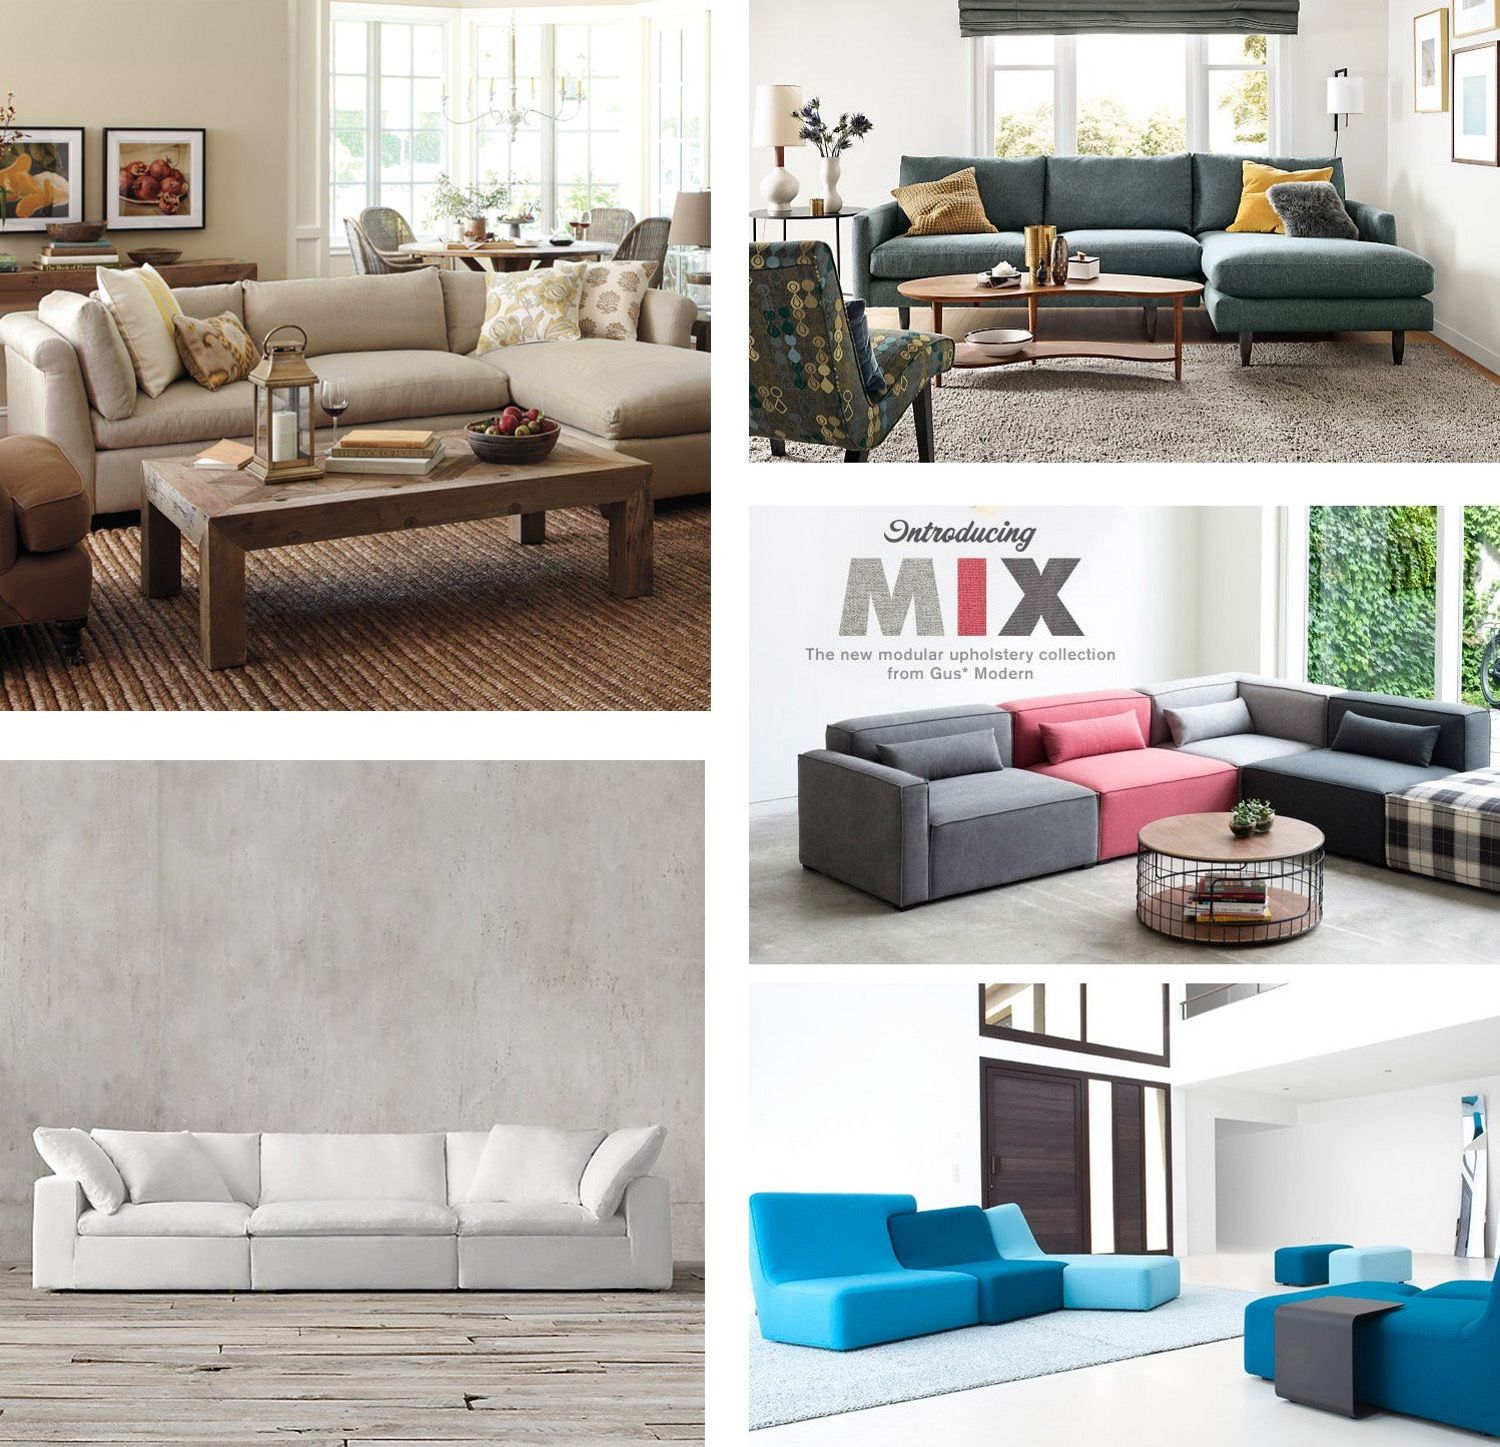 Expandable Modular Best Sectional Sofas Annual Guide 2016